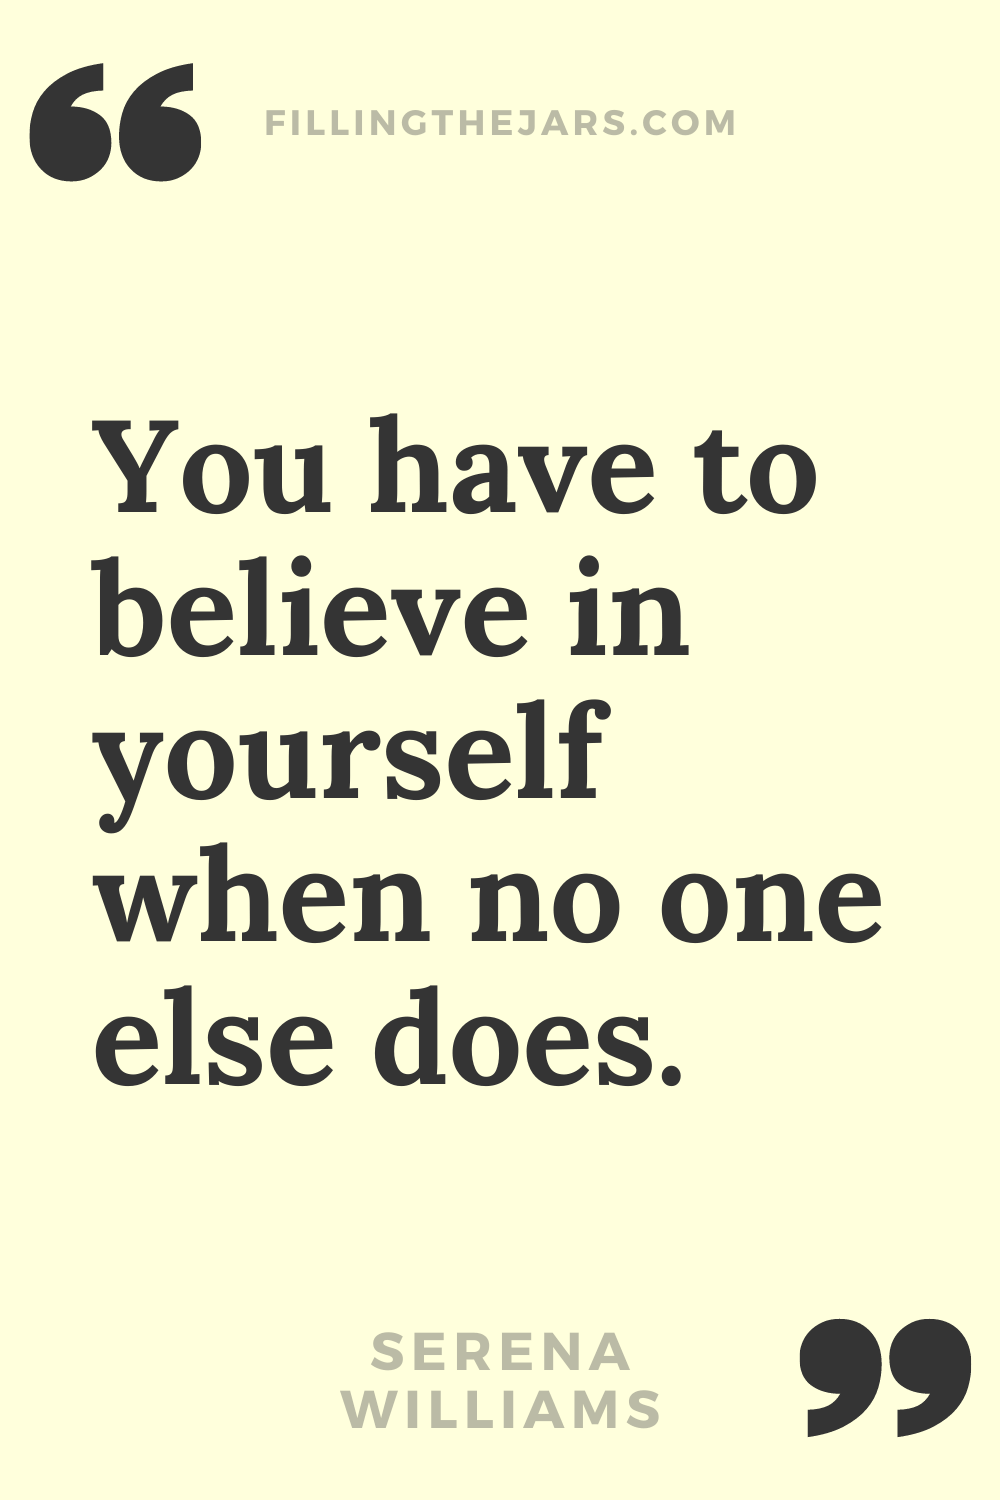 Serena Williams you have to believe in yourself when no one else does strong proud woman quote in black text on off-white background.